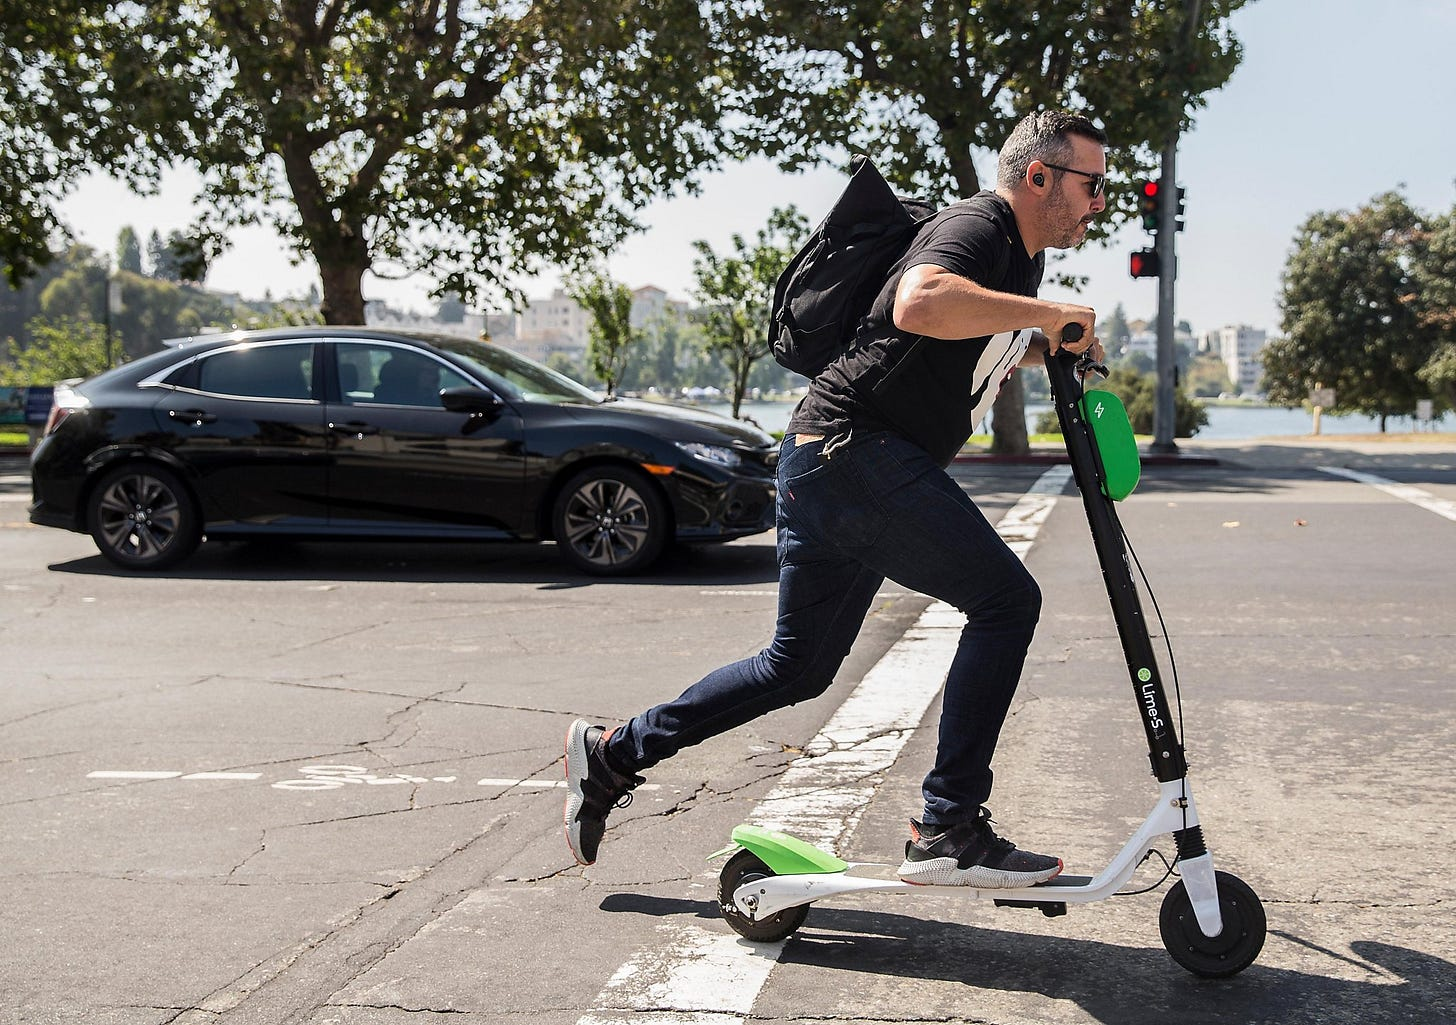 Image result for scooter next to car